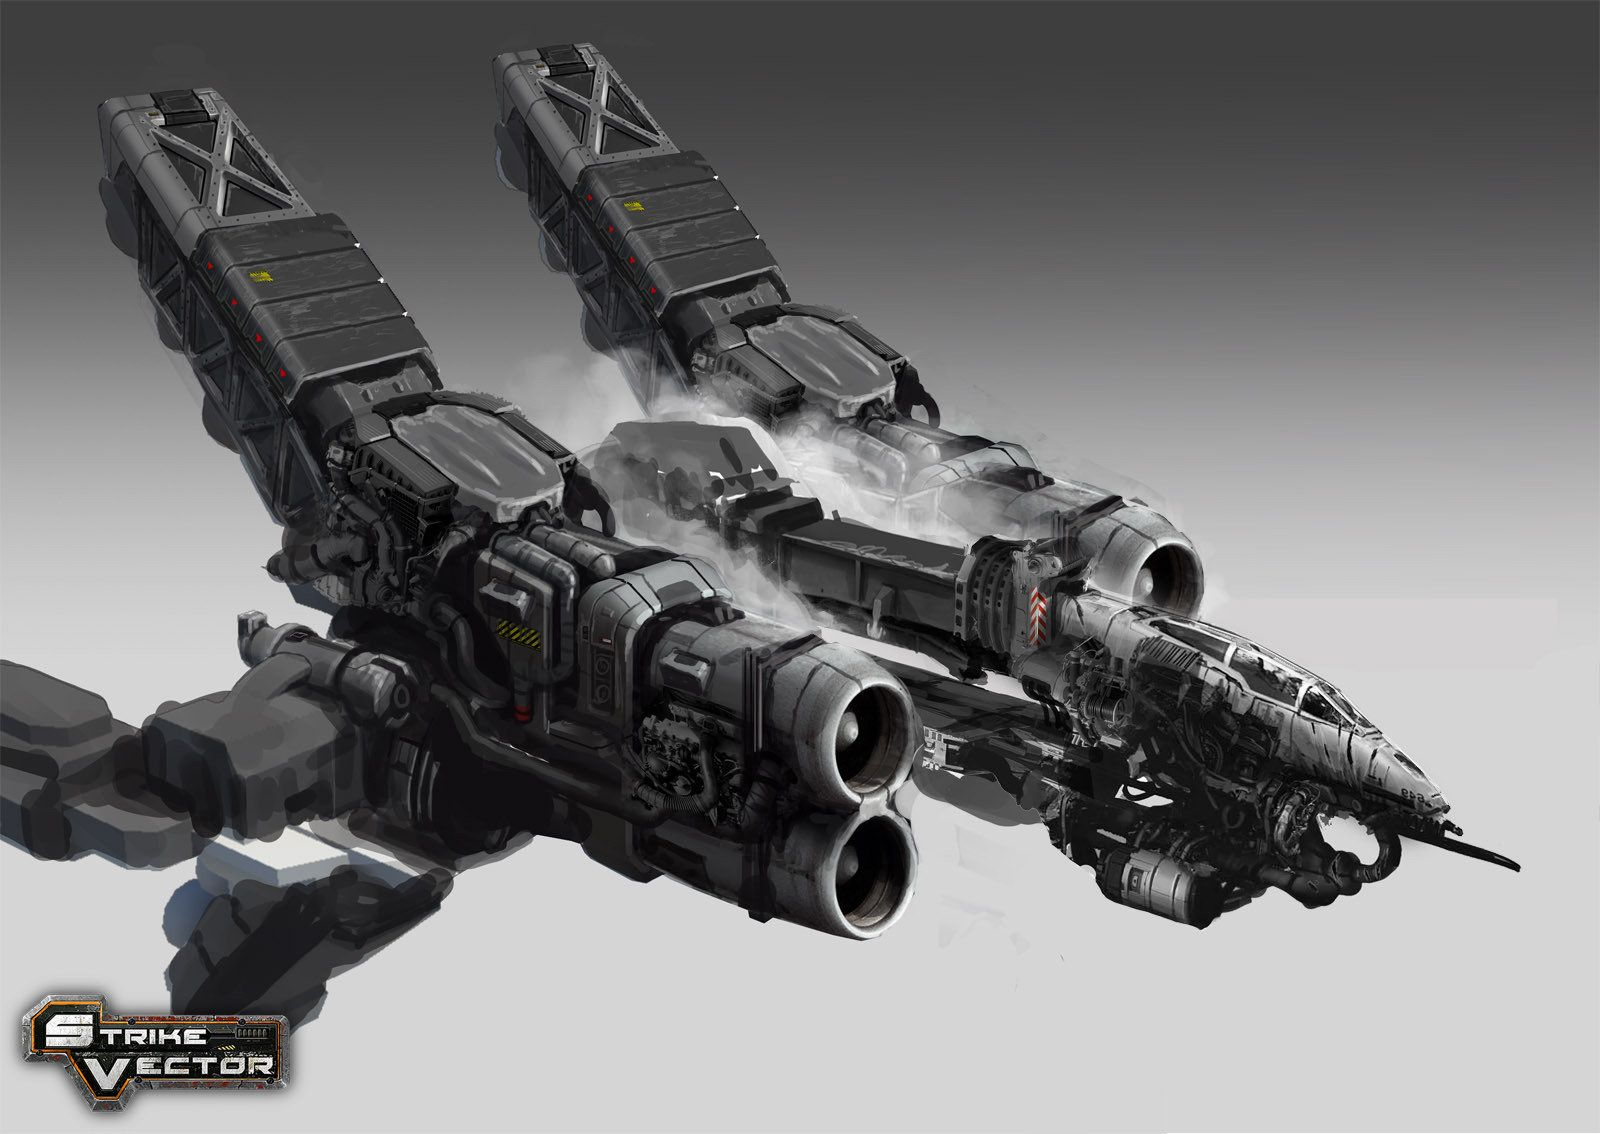 Strike Vector 07, Paul Chadeisson